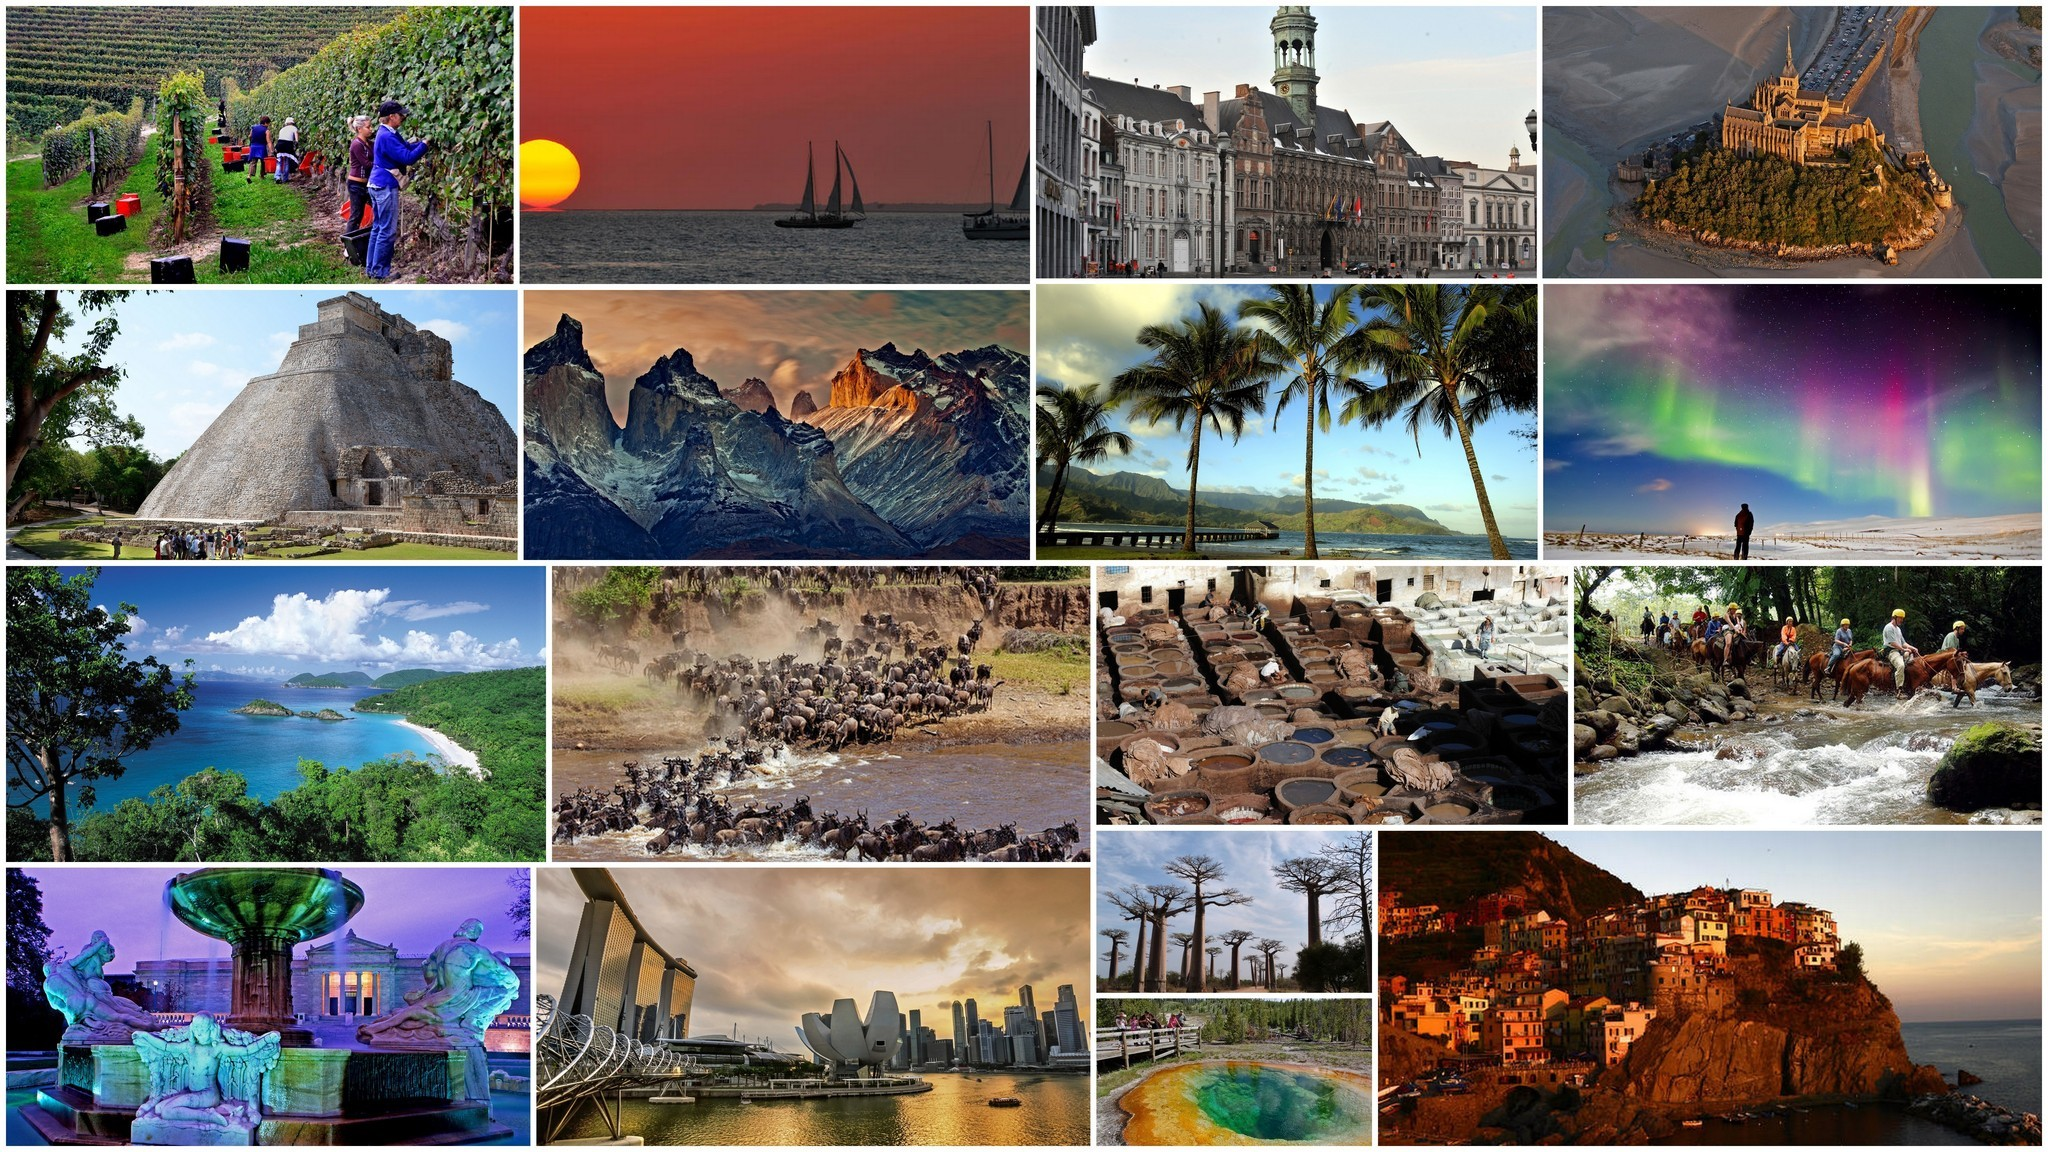 41 Travel Destinations For 2015